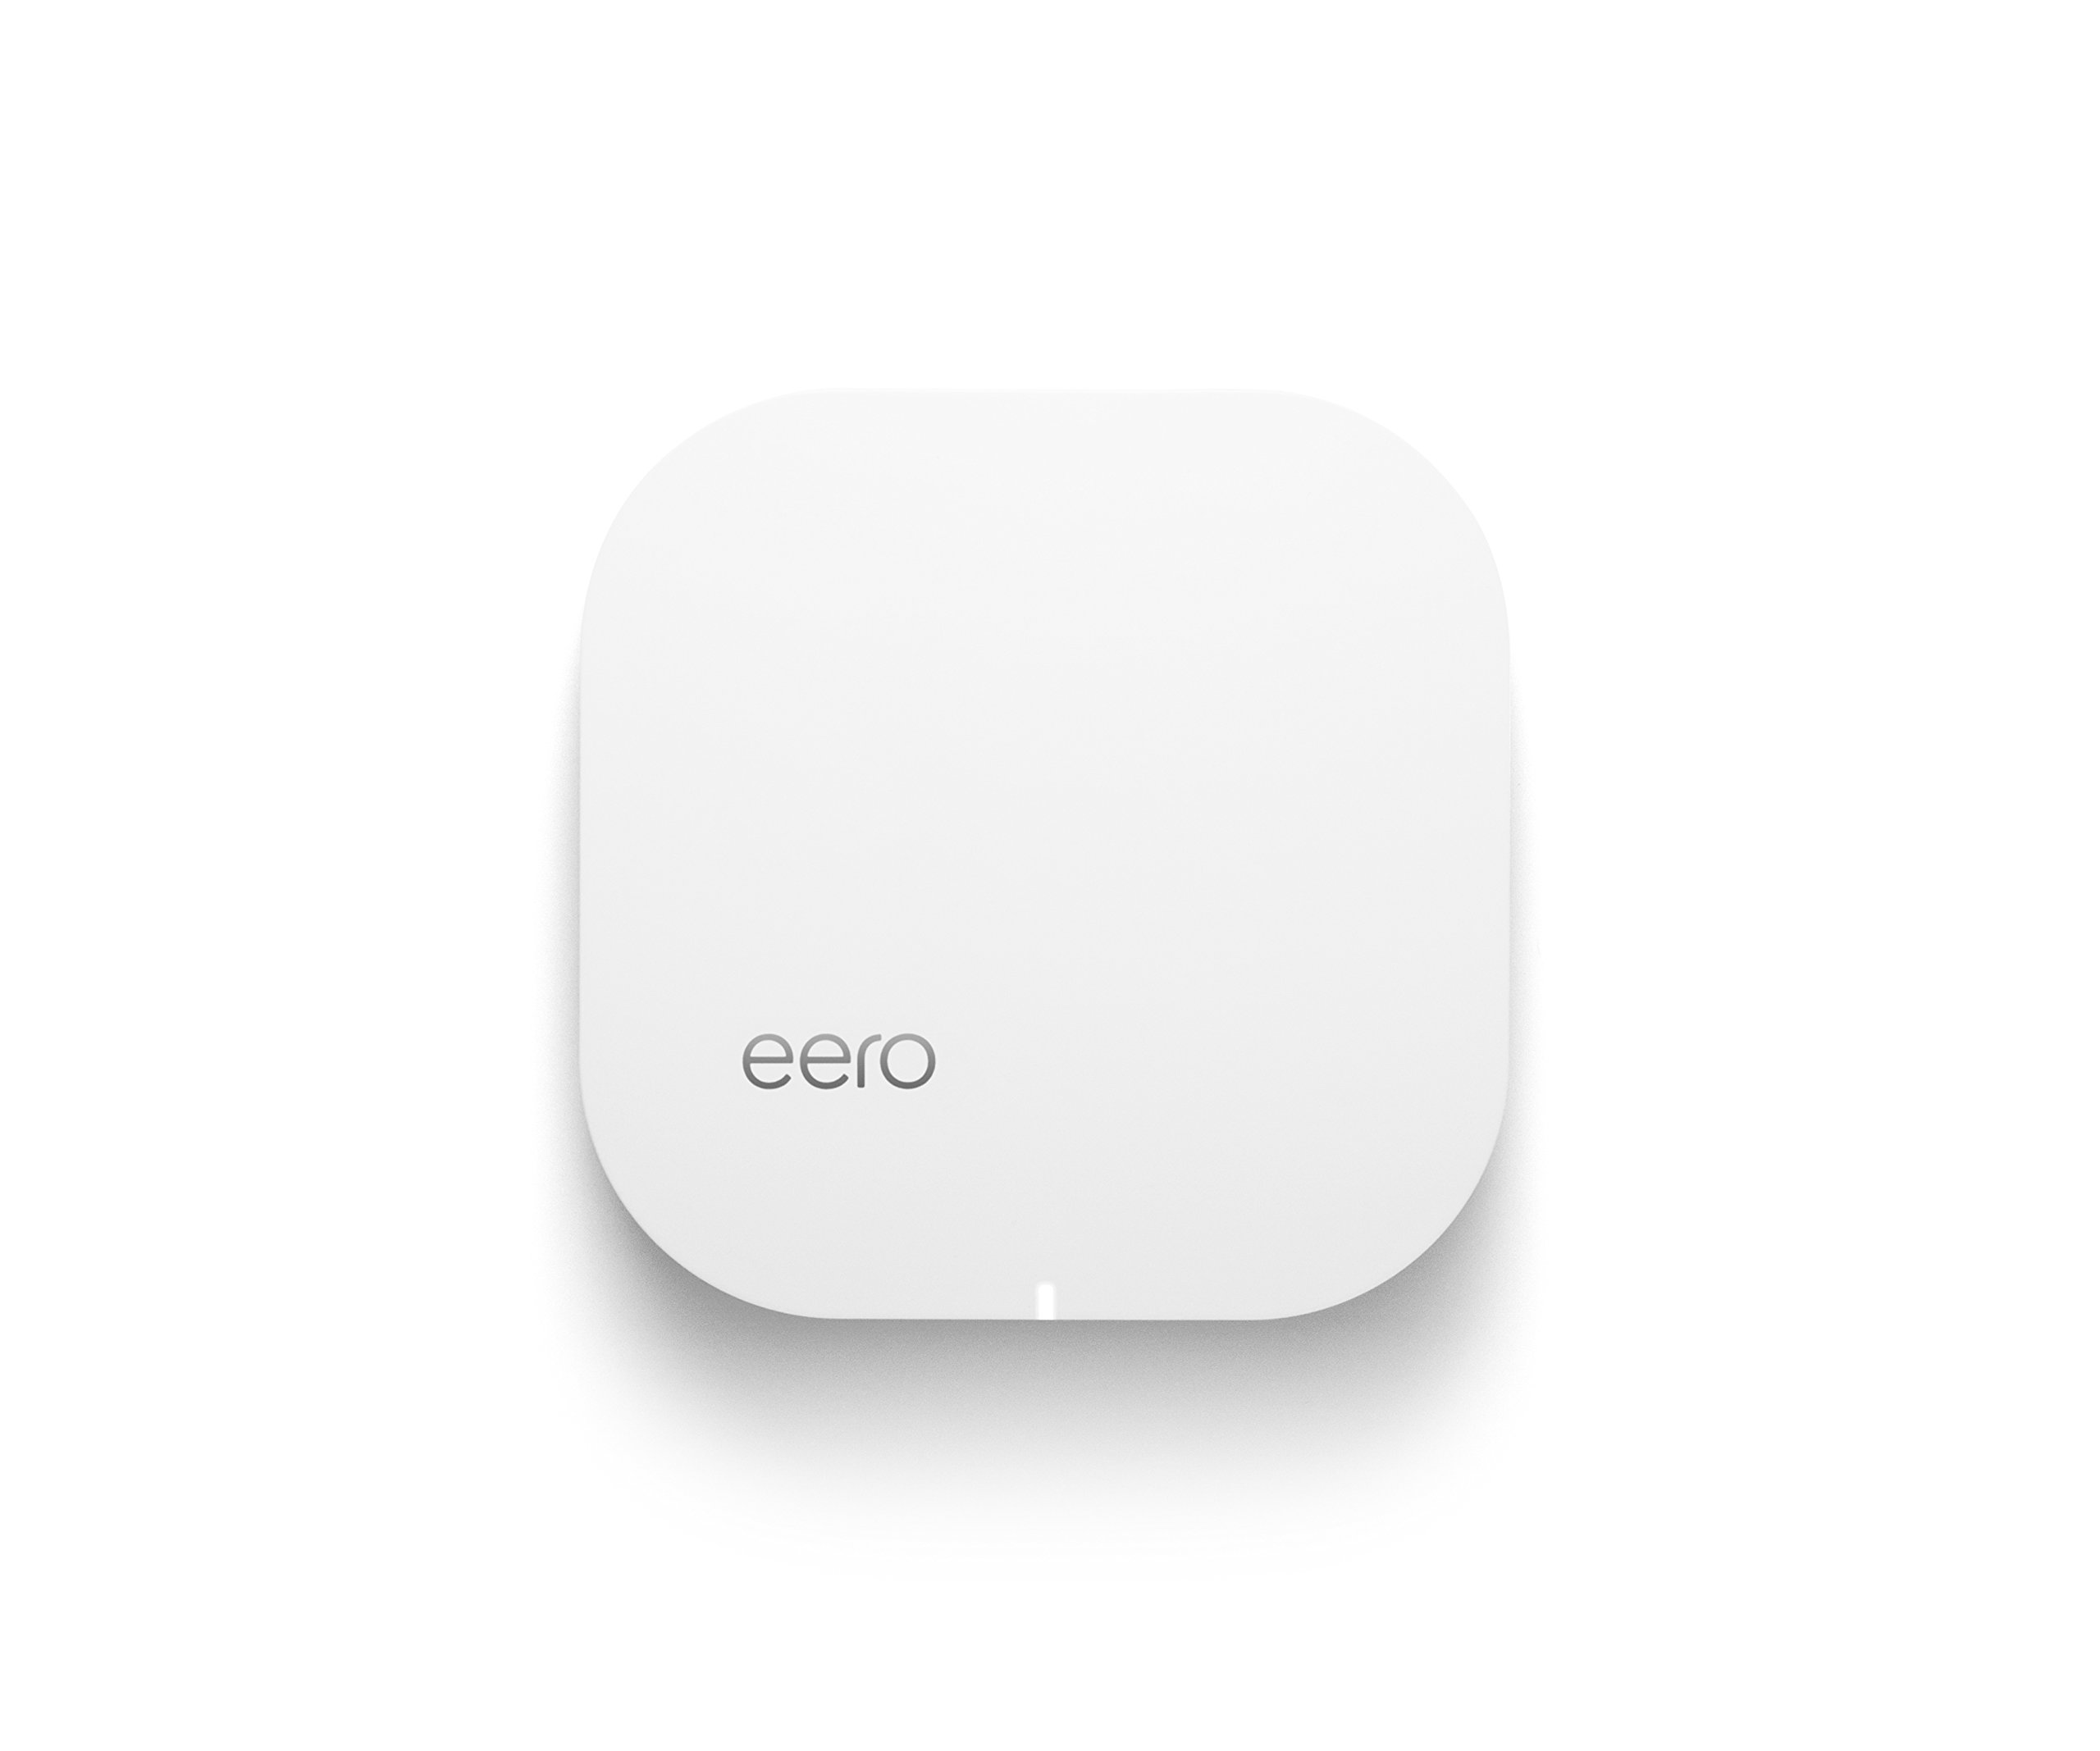 eero Home WiFi System (Individual) - 1st generation, 2016